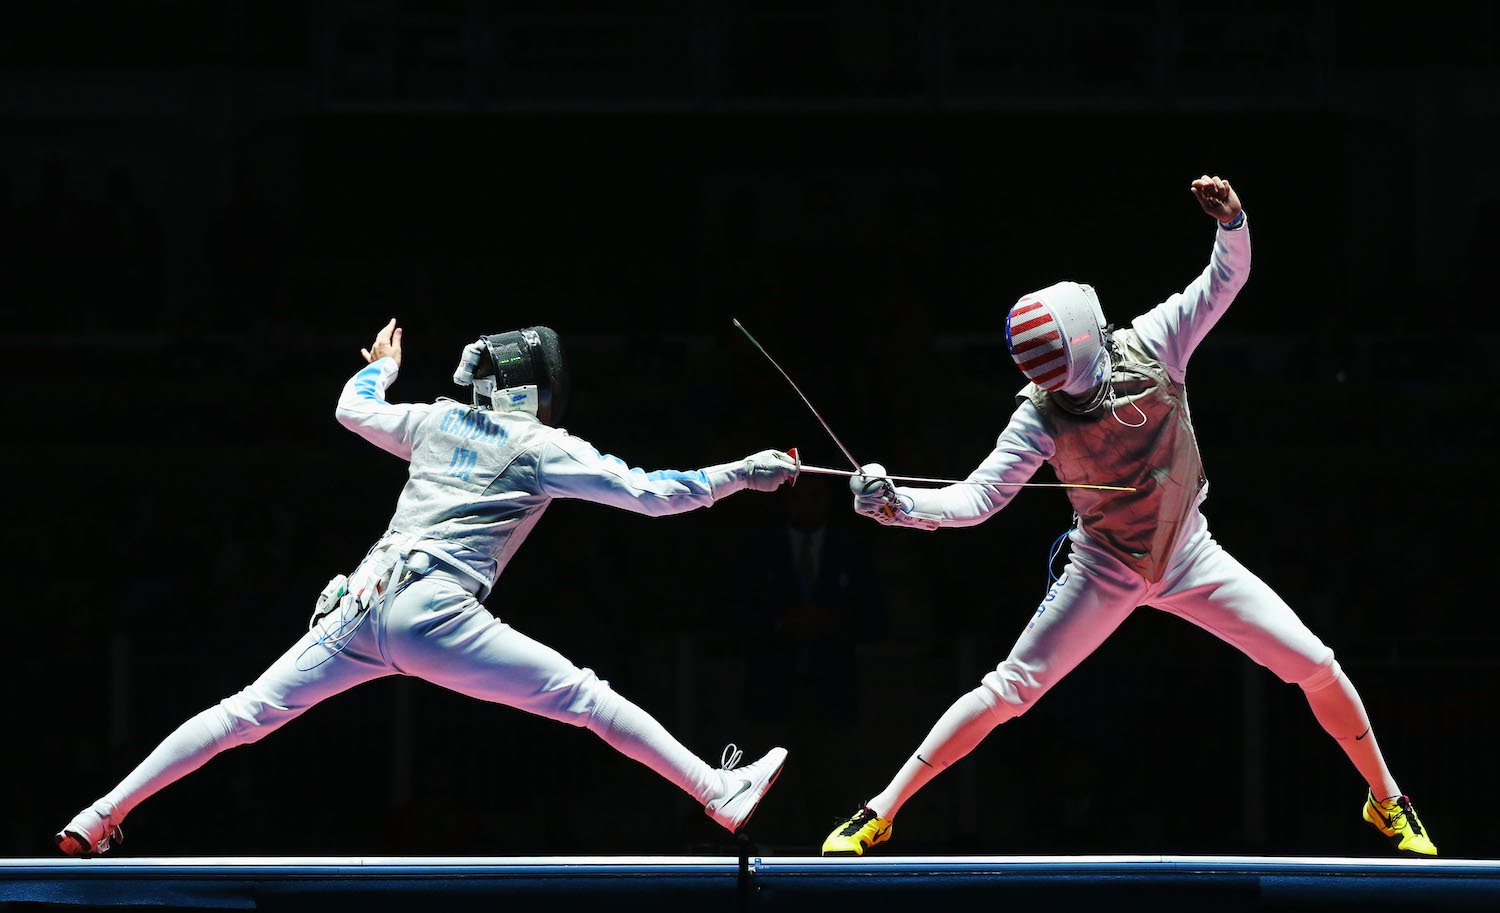 1500x913 - Fencing Wallpapers 28